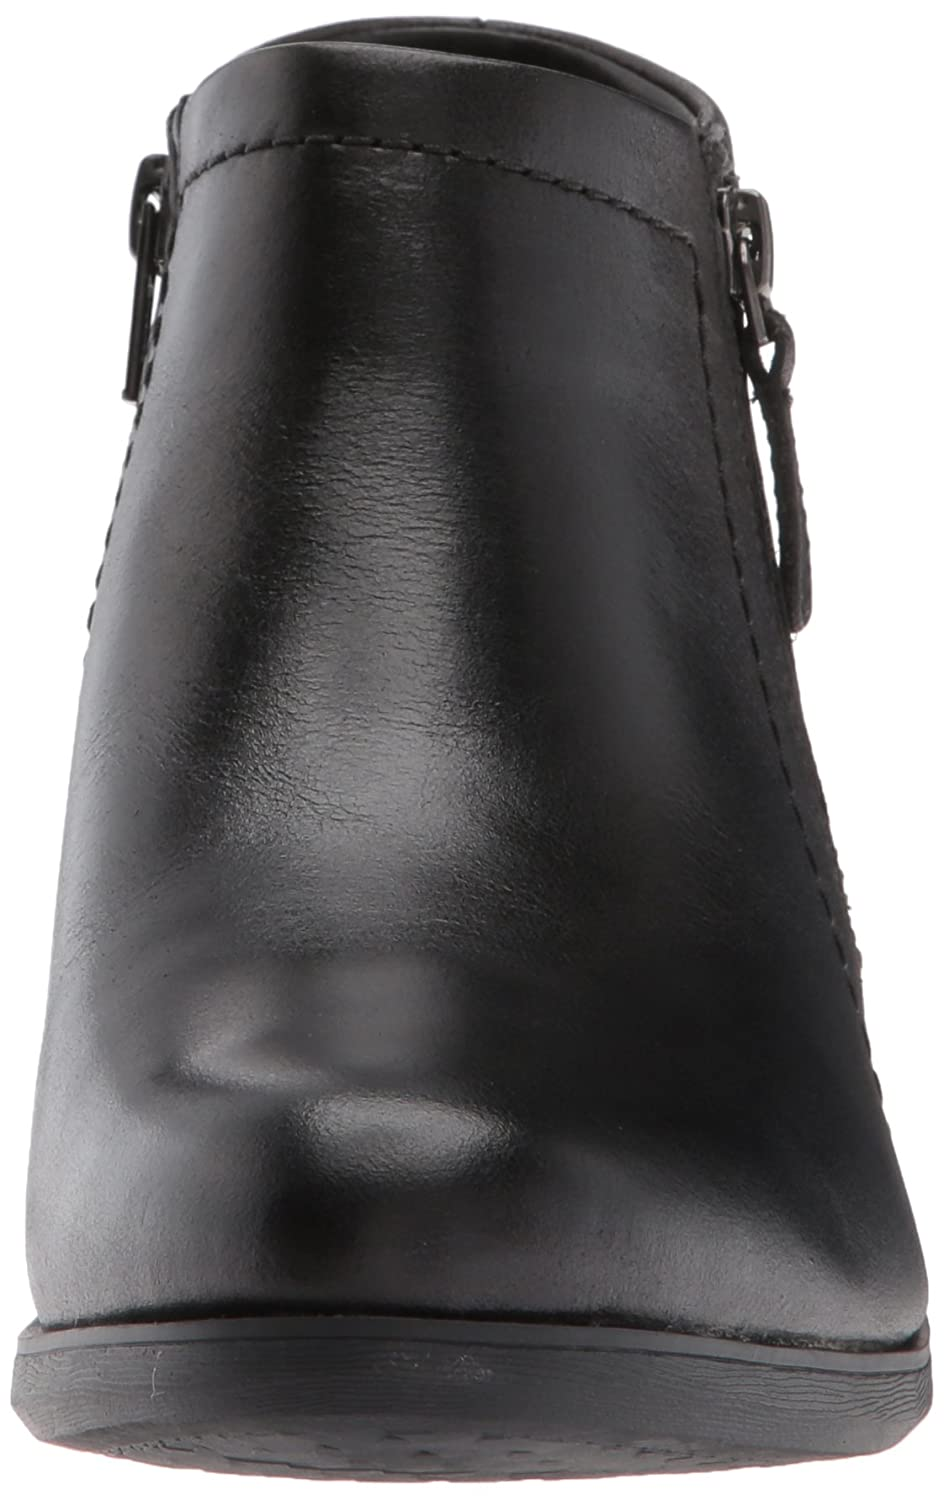 Cobb Hill Women's Oliana Panel Ankle Boot B06WCZ5NBW 9 W US|Black Pull Up Lthr